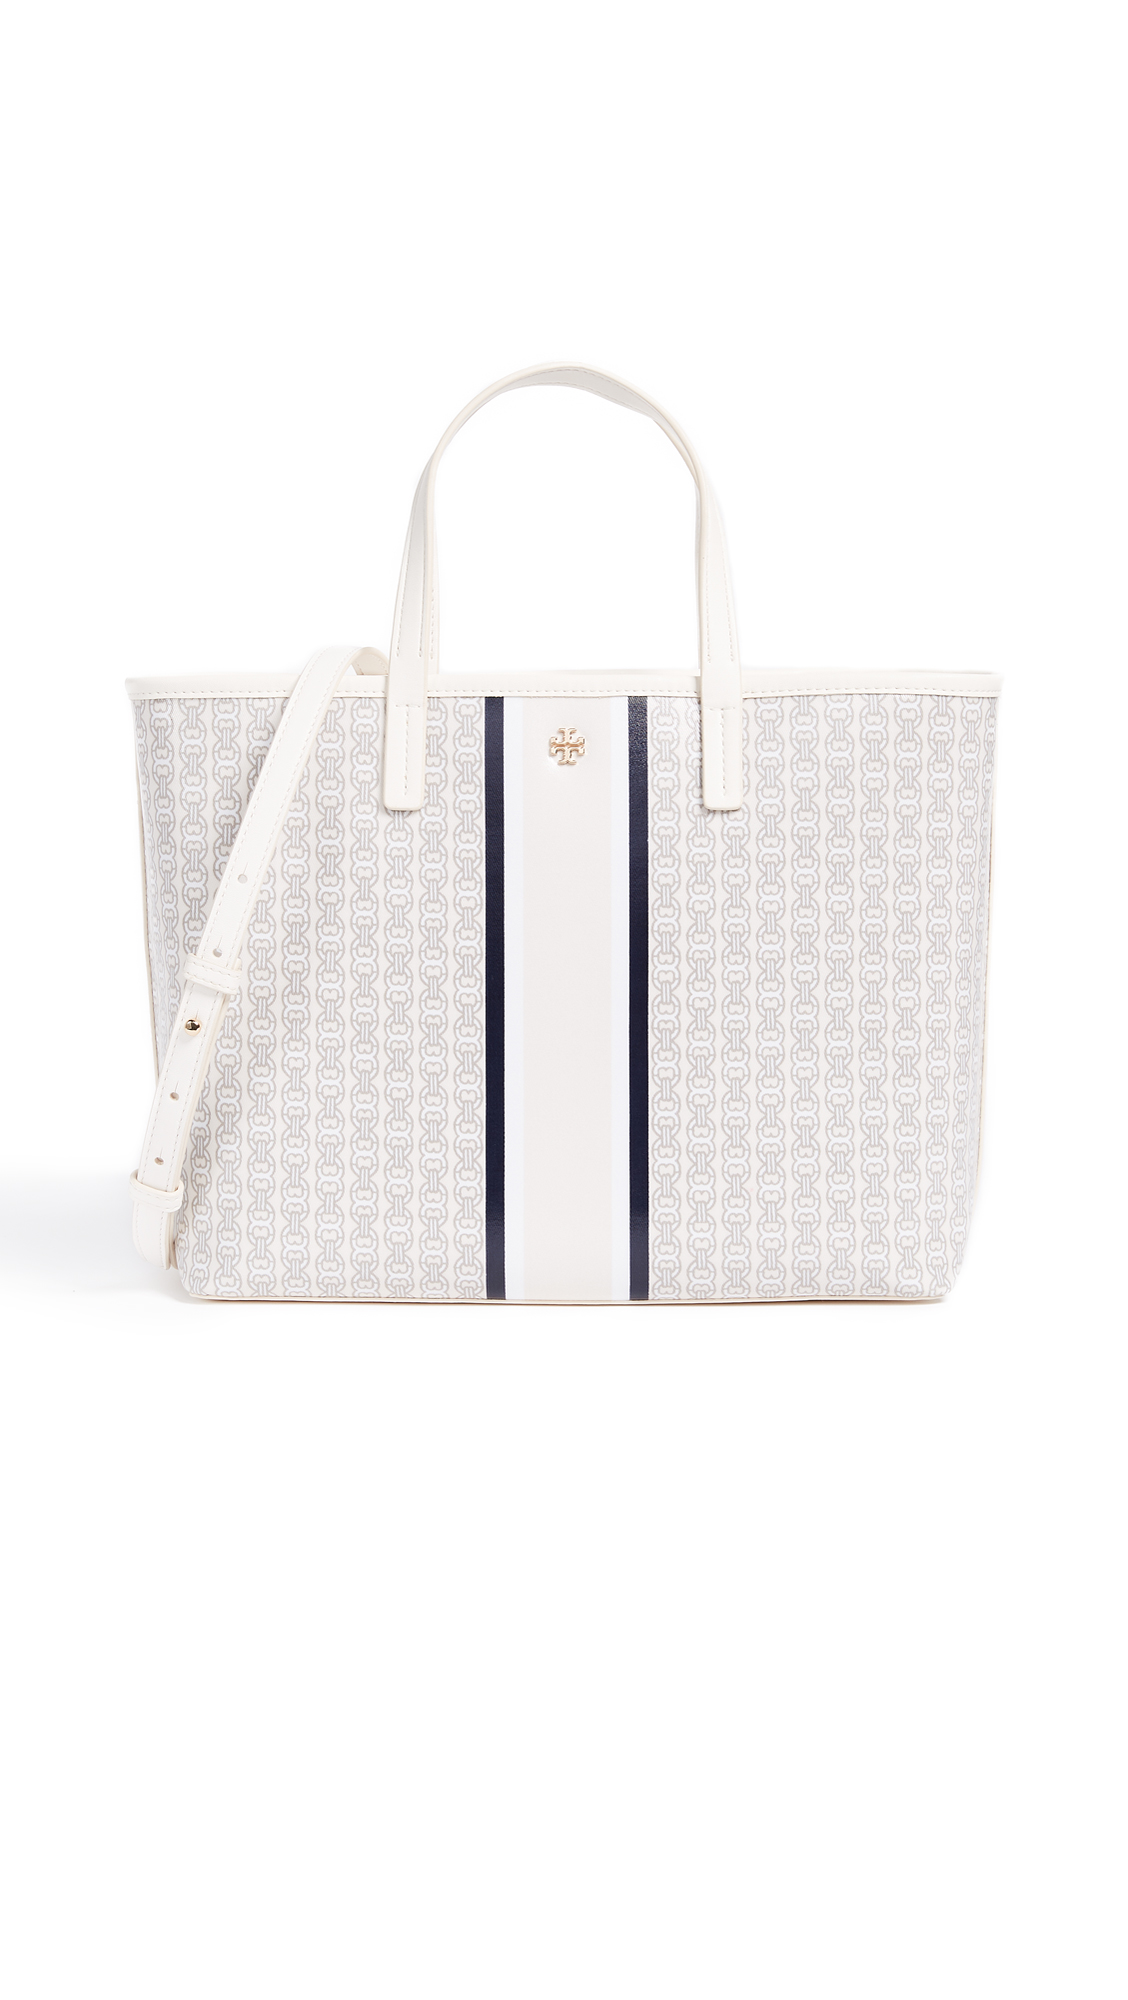 Tory Burch Gemini Link Small Tote - New Ivory